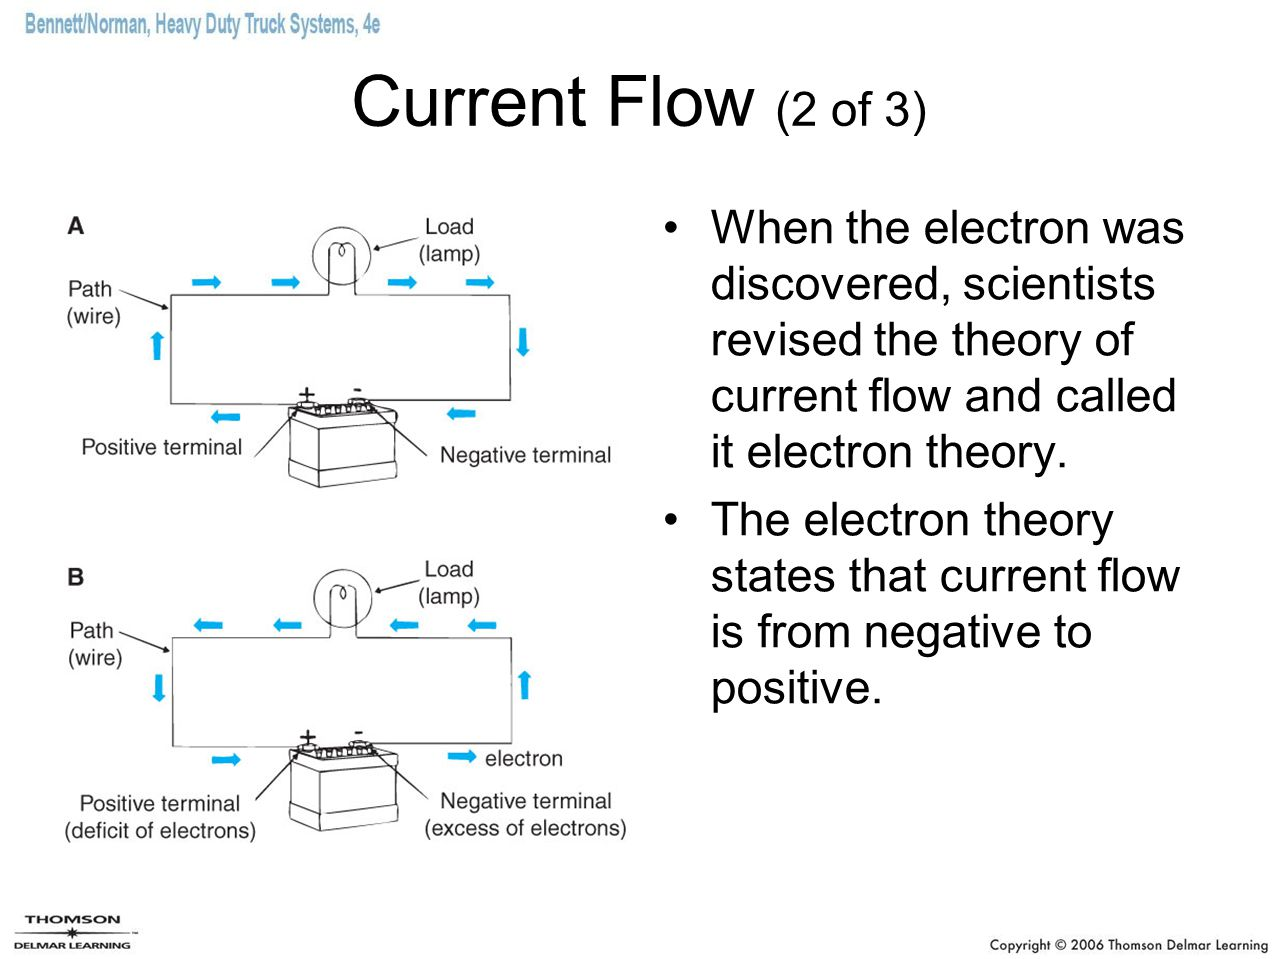 Current Flow (2 of 3) When the electron was discovered, scientists revised the theory of current flow and called it electron theory.